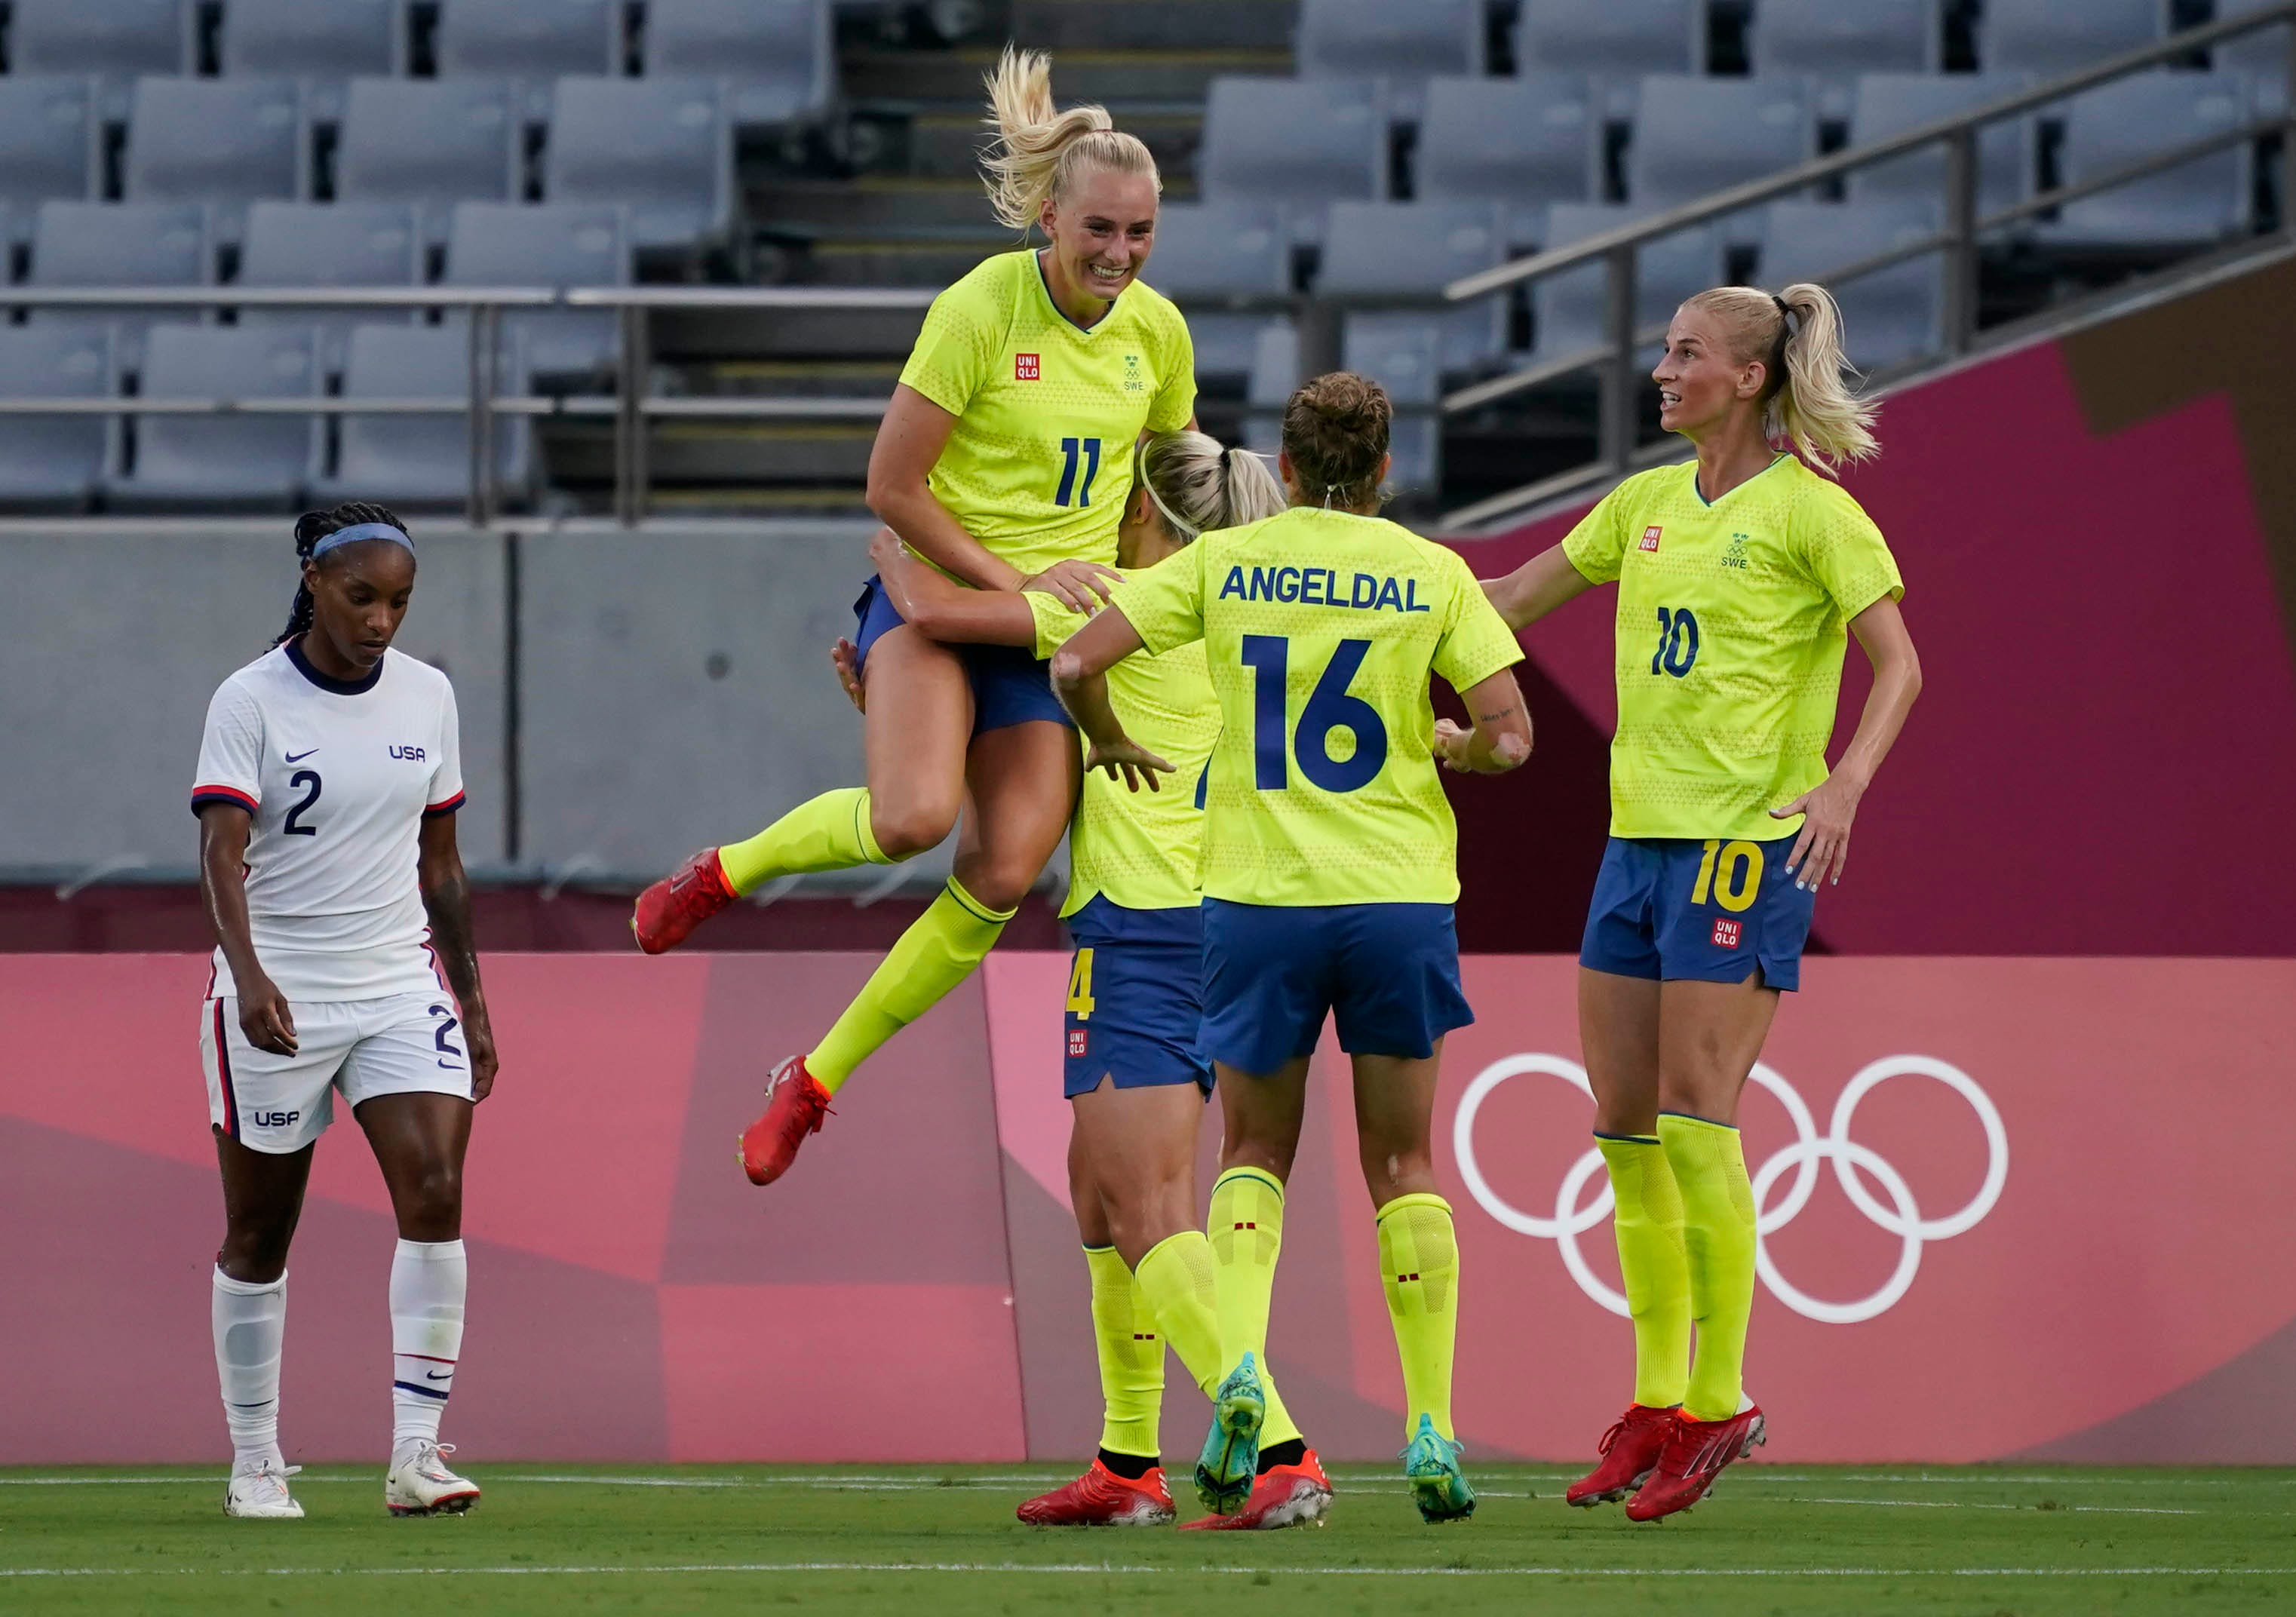 USWNT loses 3-0 to Sweden in first match at 2021 Tokyo Olympics